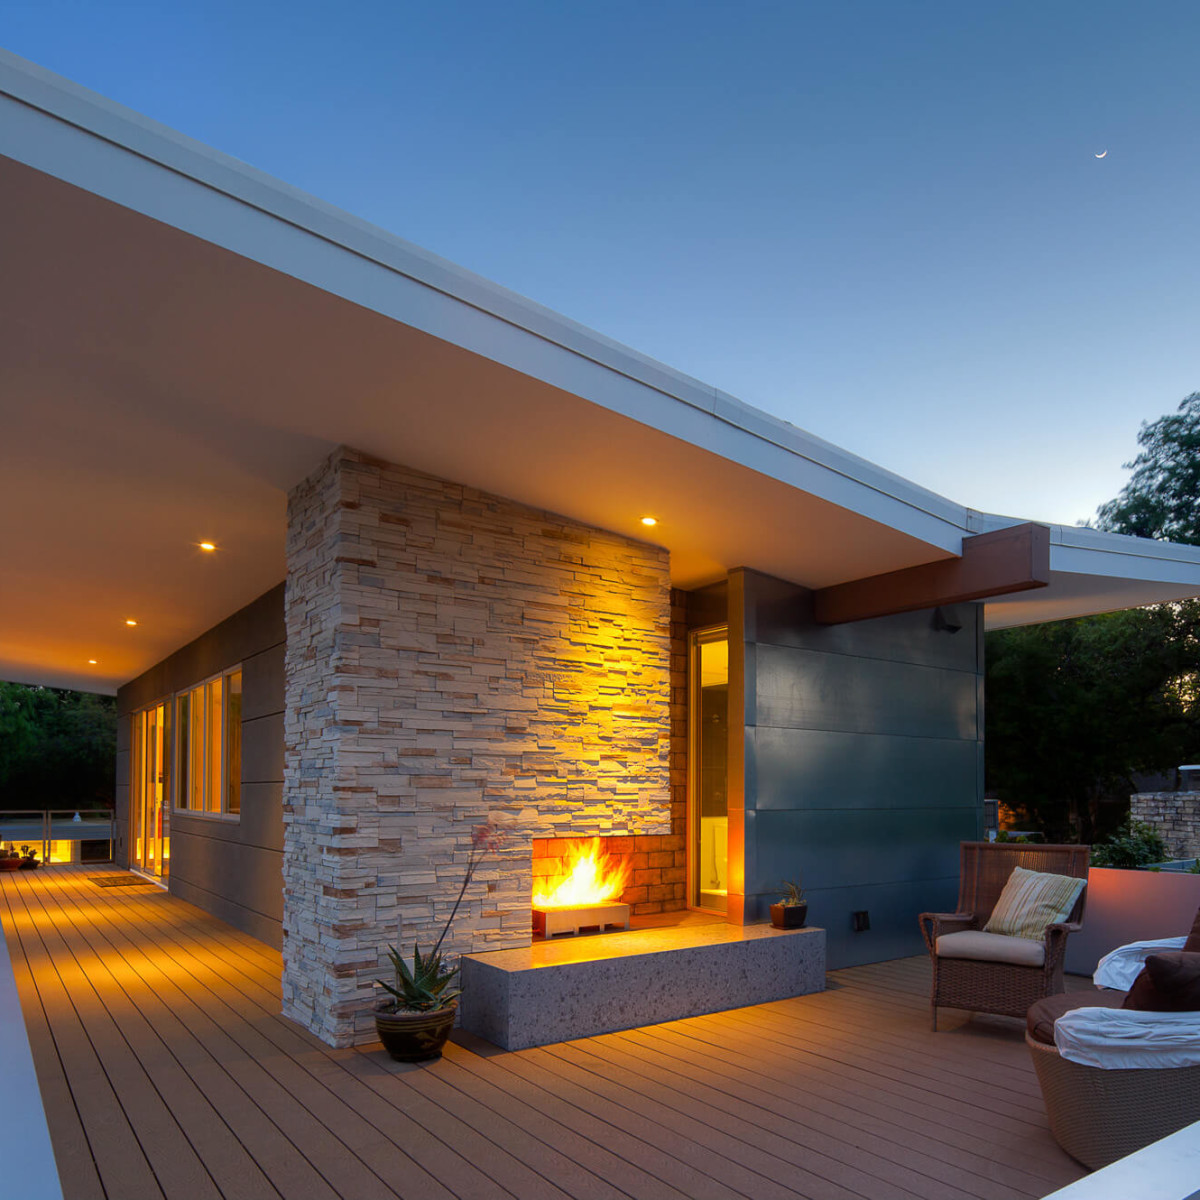 Austin design experts reveal top trends for your outdoor ... on Best Outdoor Living Spaces id=33357